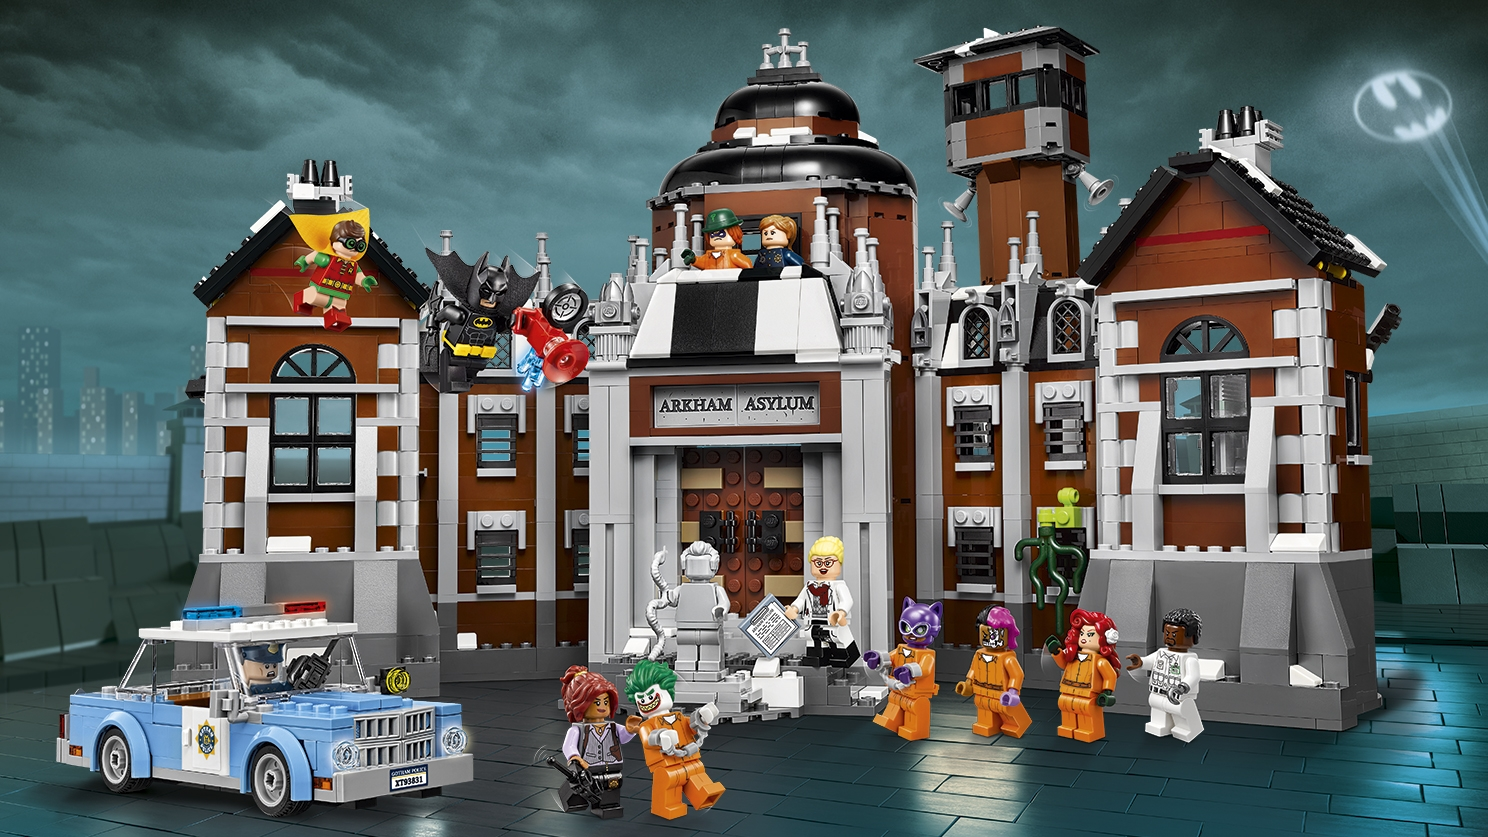 LEGO Batman Movie Arkham Asylum - 70912 - The villains of Gotham City have been caught and are inmates at the Arkham Asylum where they are controlled by police officers, doctors and Batman!